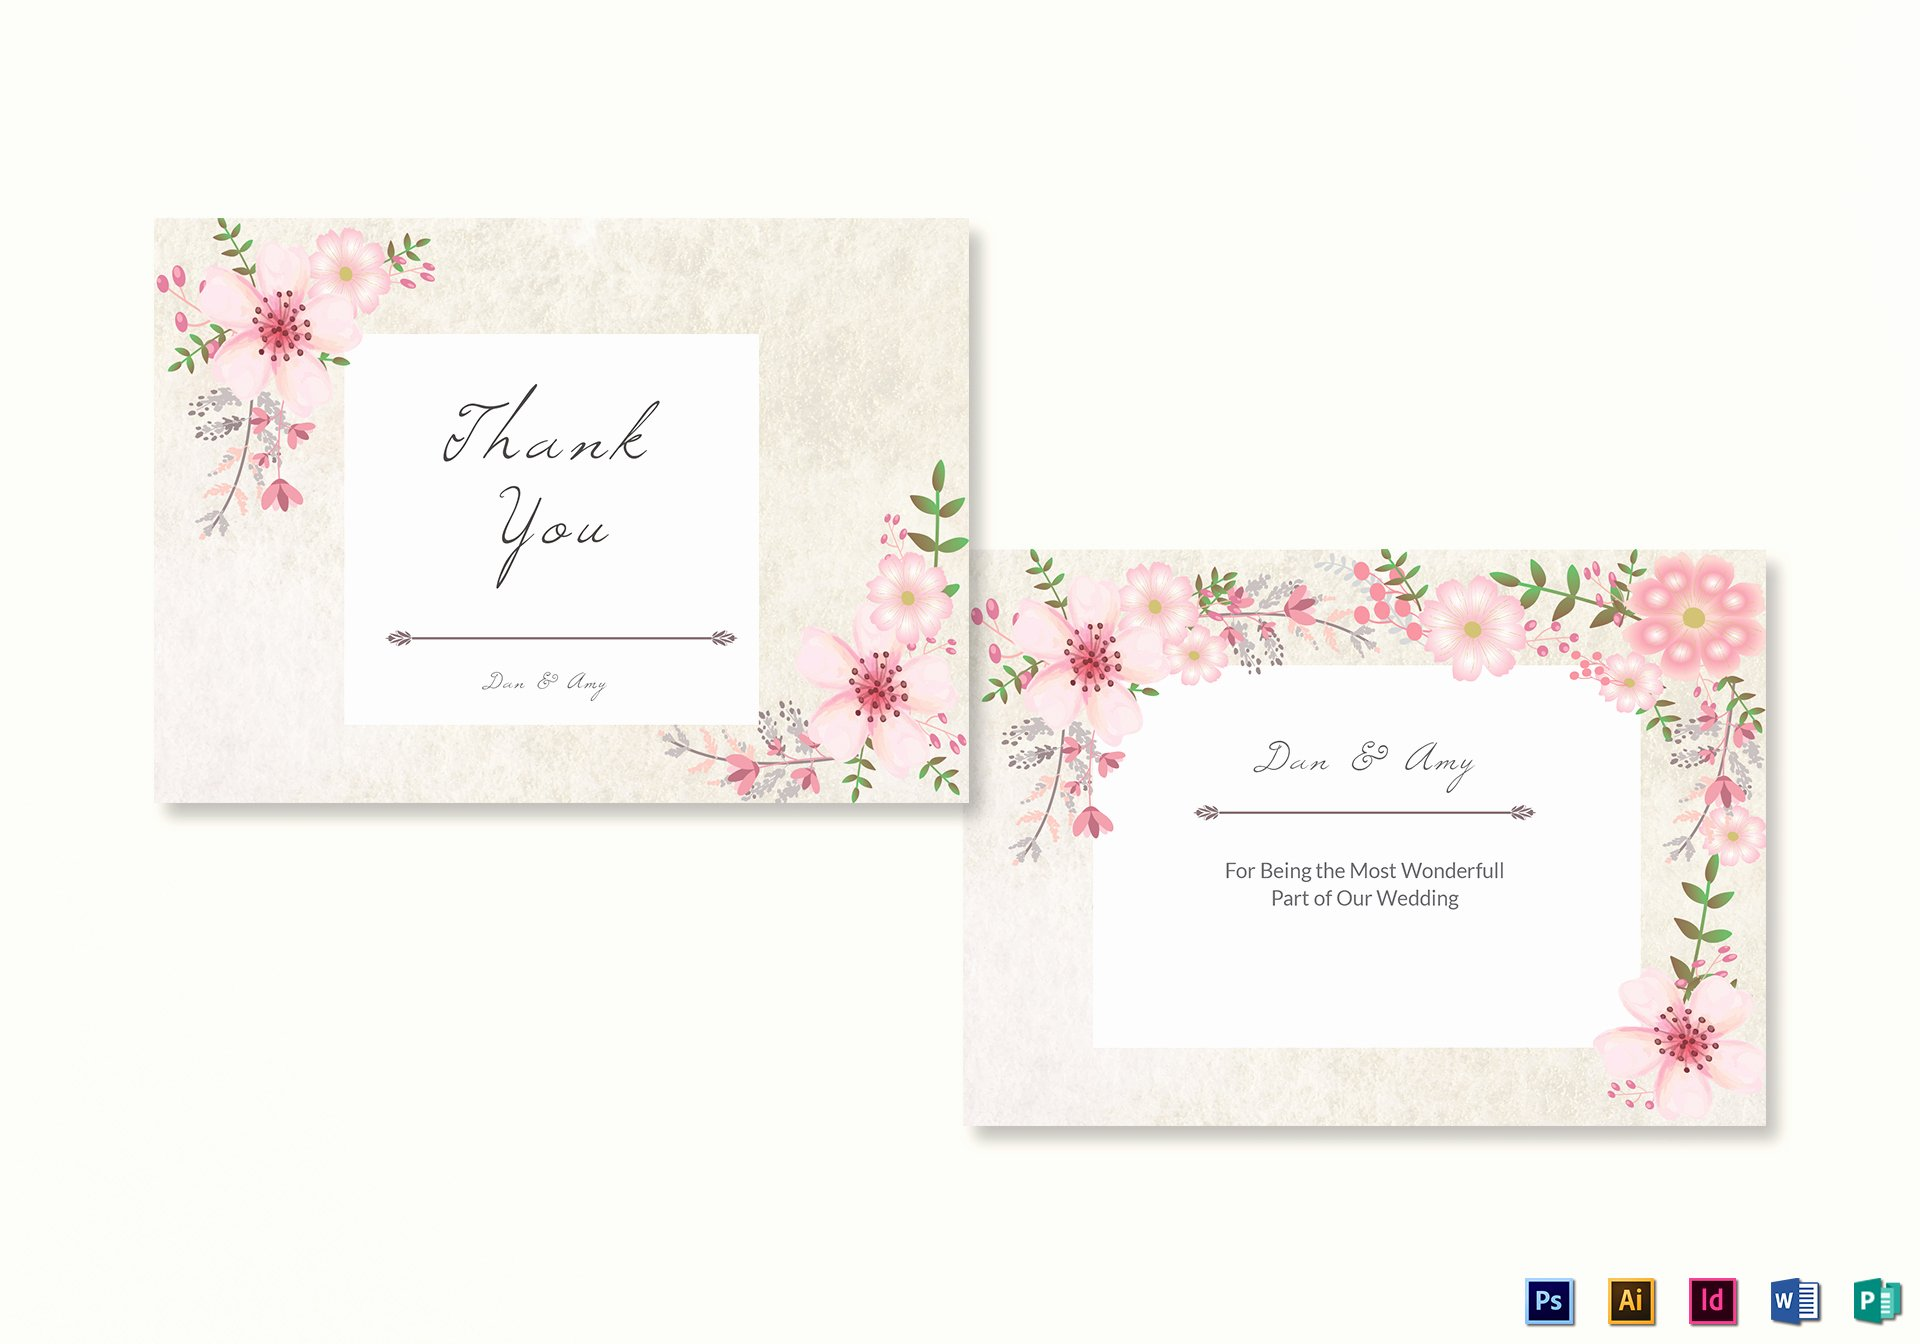 Thank You Card Template Word Awesome Pink Floral Thank You Card Design Template In Psd Word Publisher Illustrator Indesign